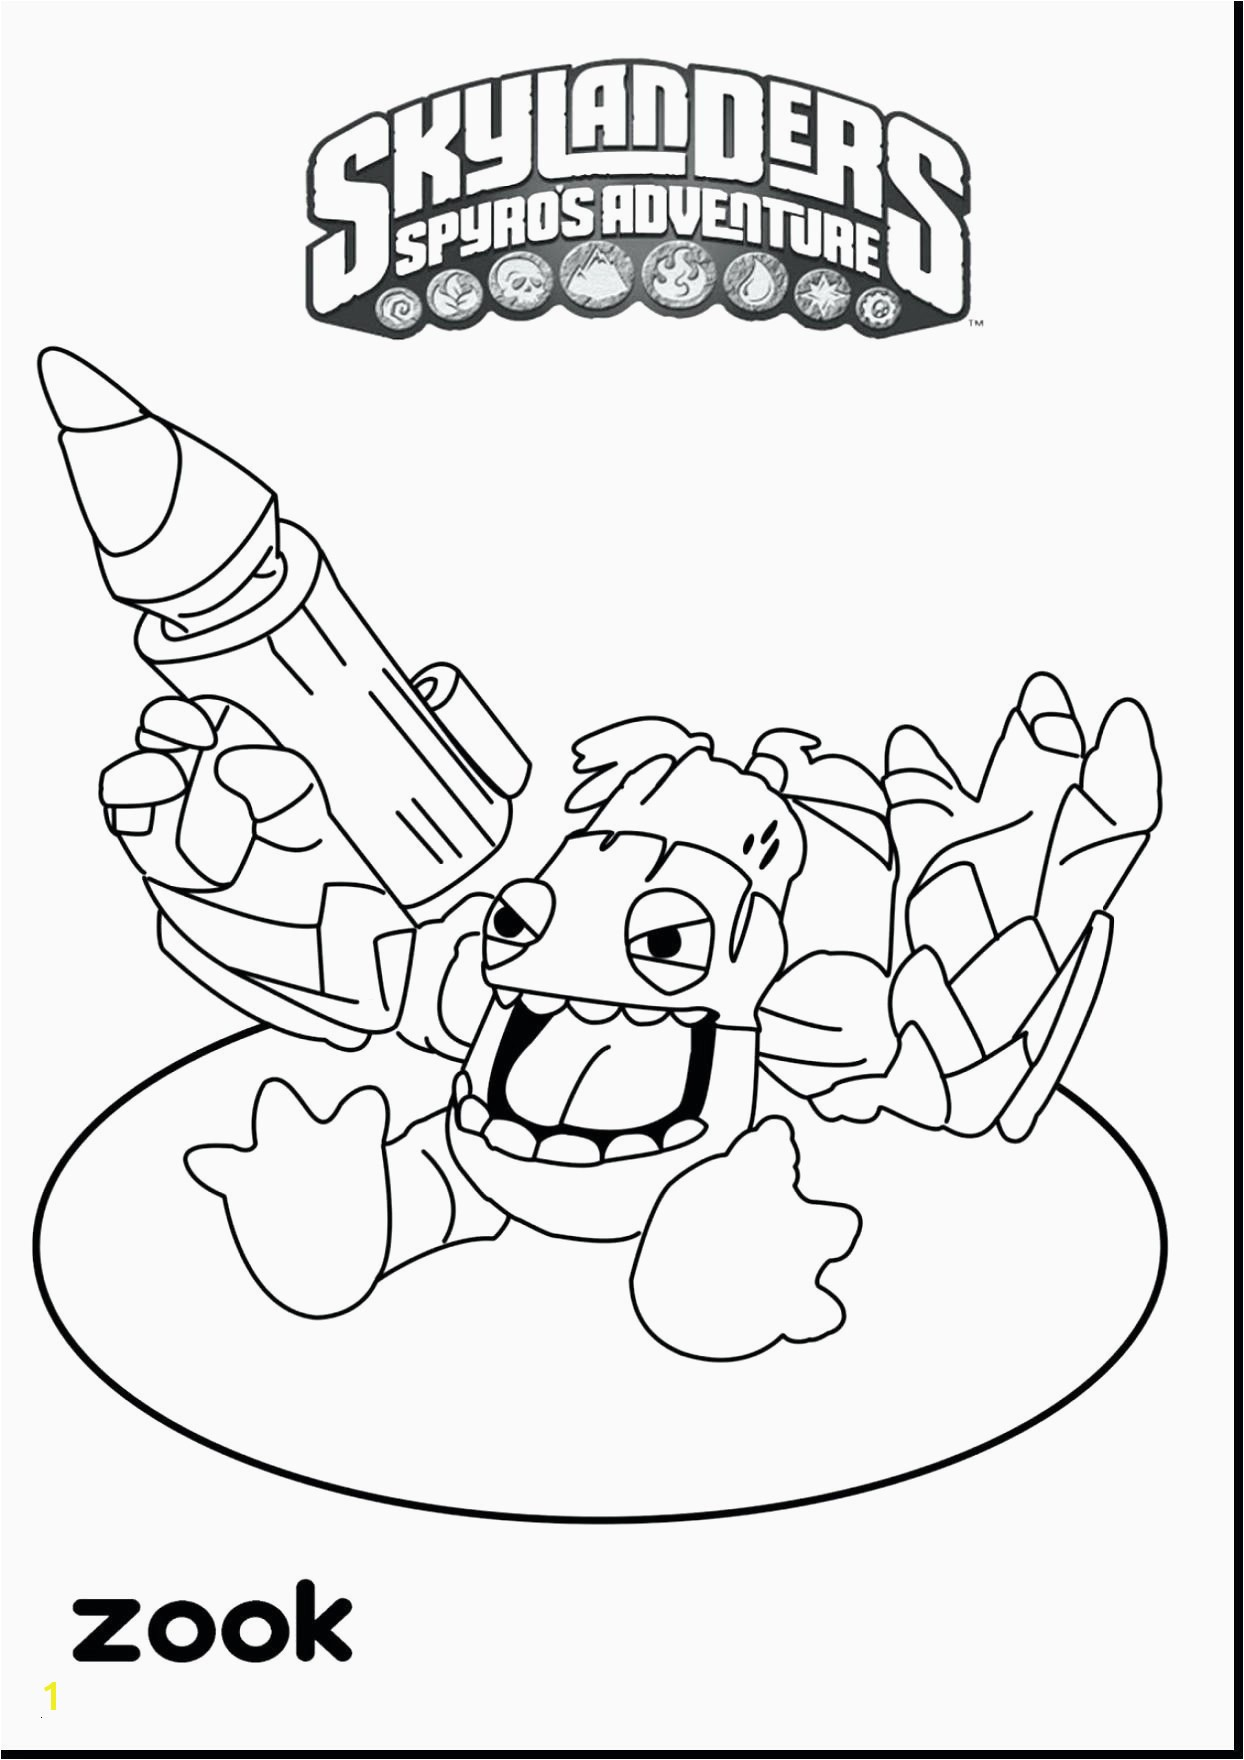 Jesus Loves Me Coloring Page Jesus Loves Me Coloring Page 14 Unique Jesus Loves Me Coloring Page